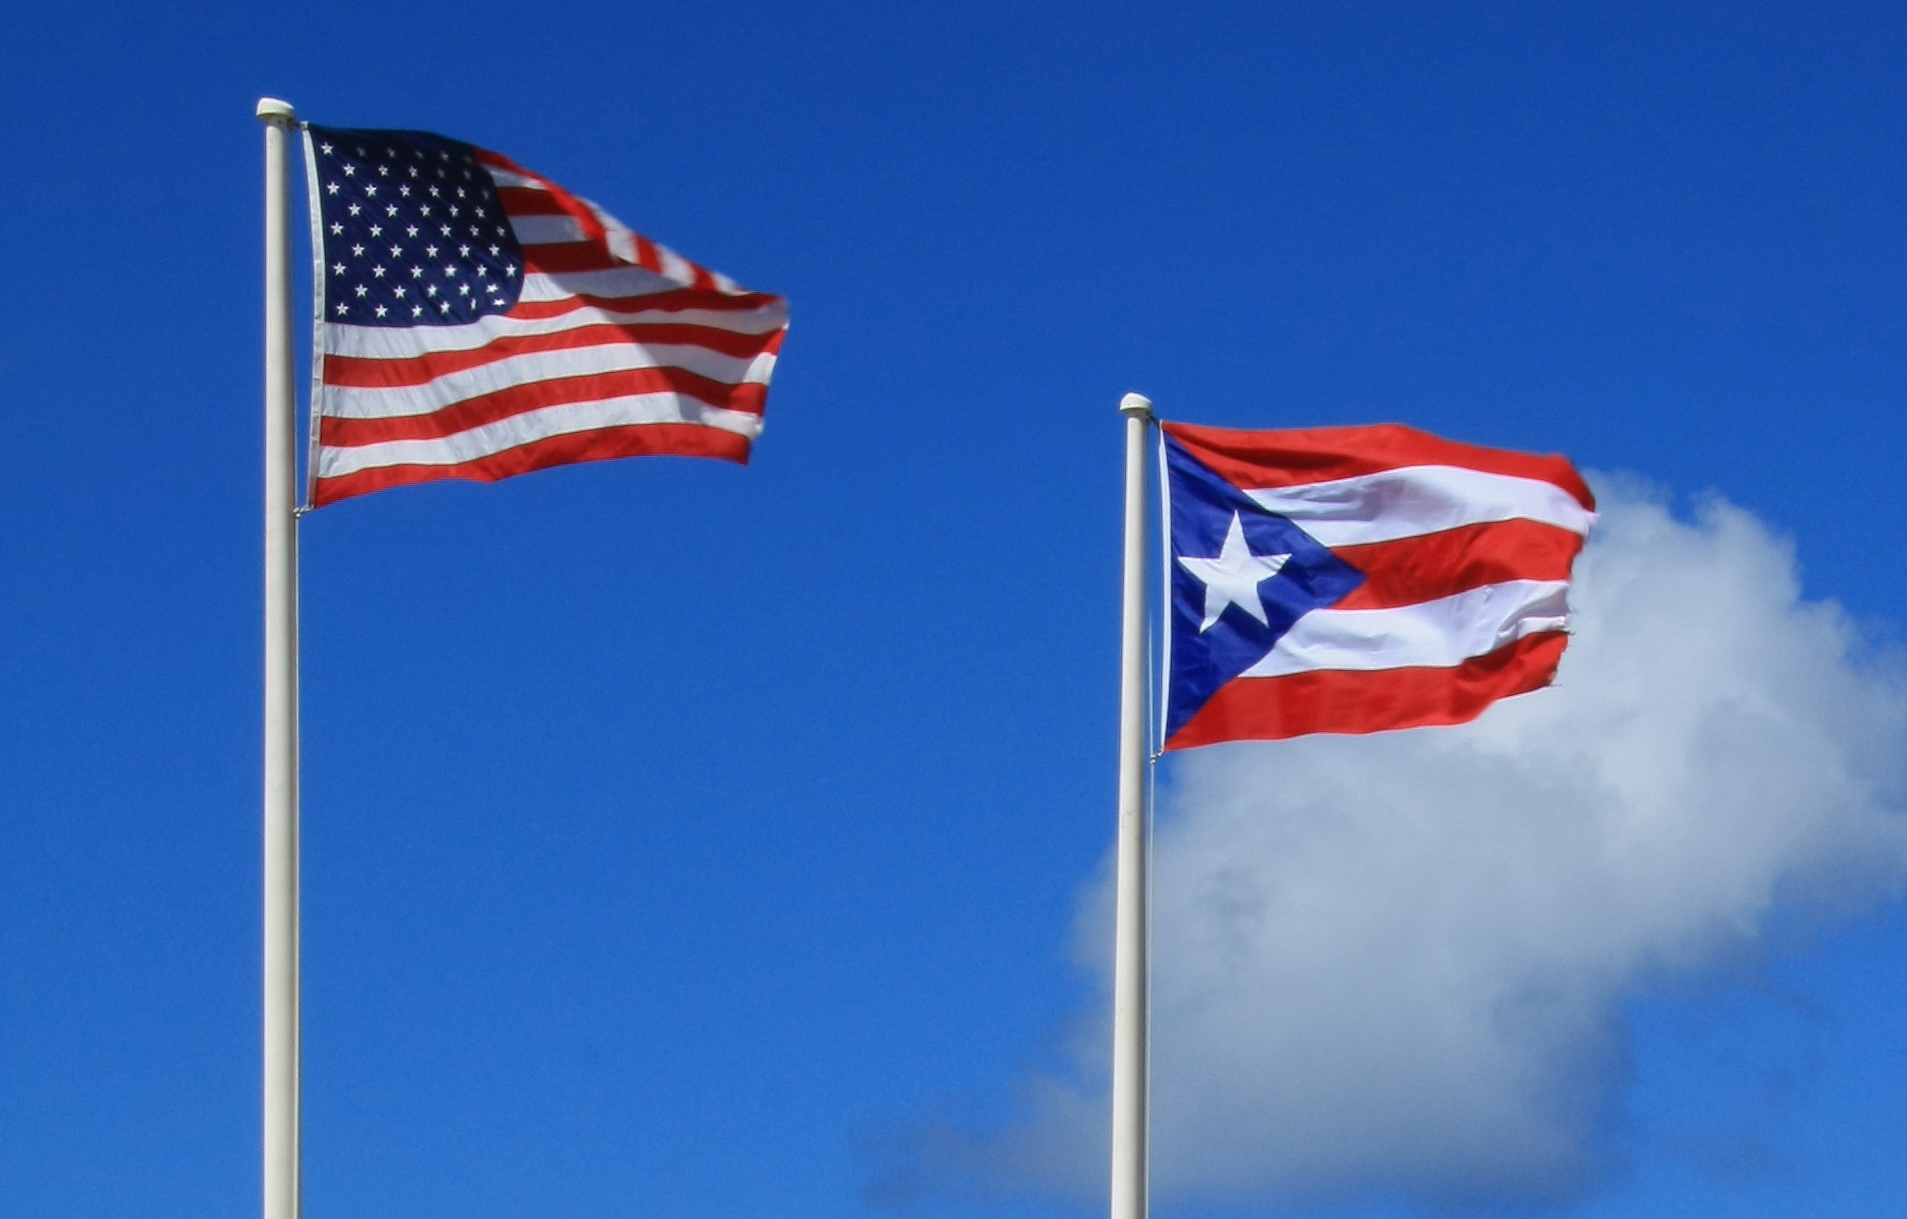 The flags of Puerto Rico and the United States